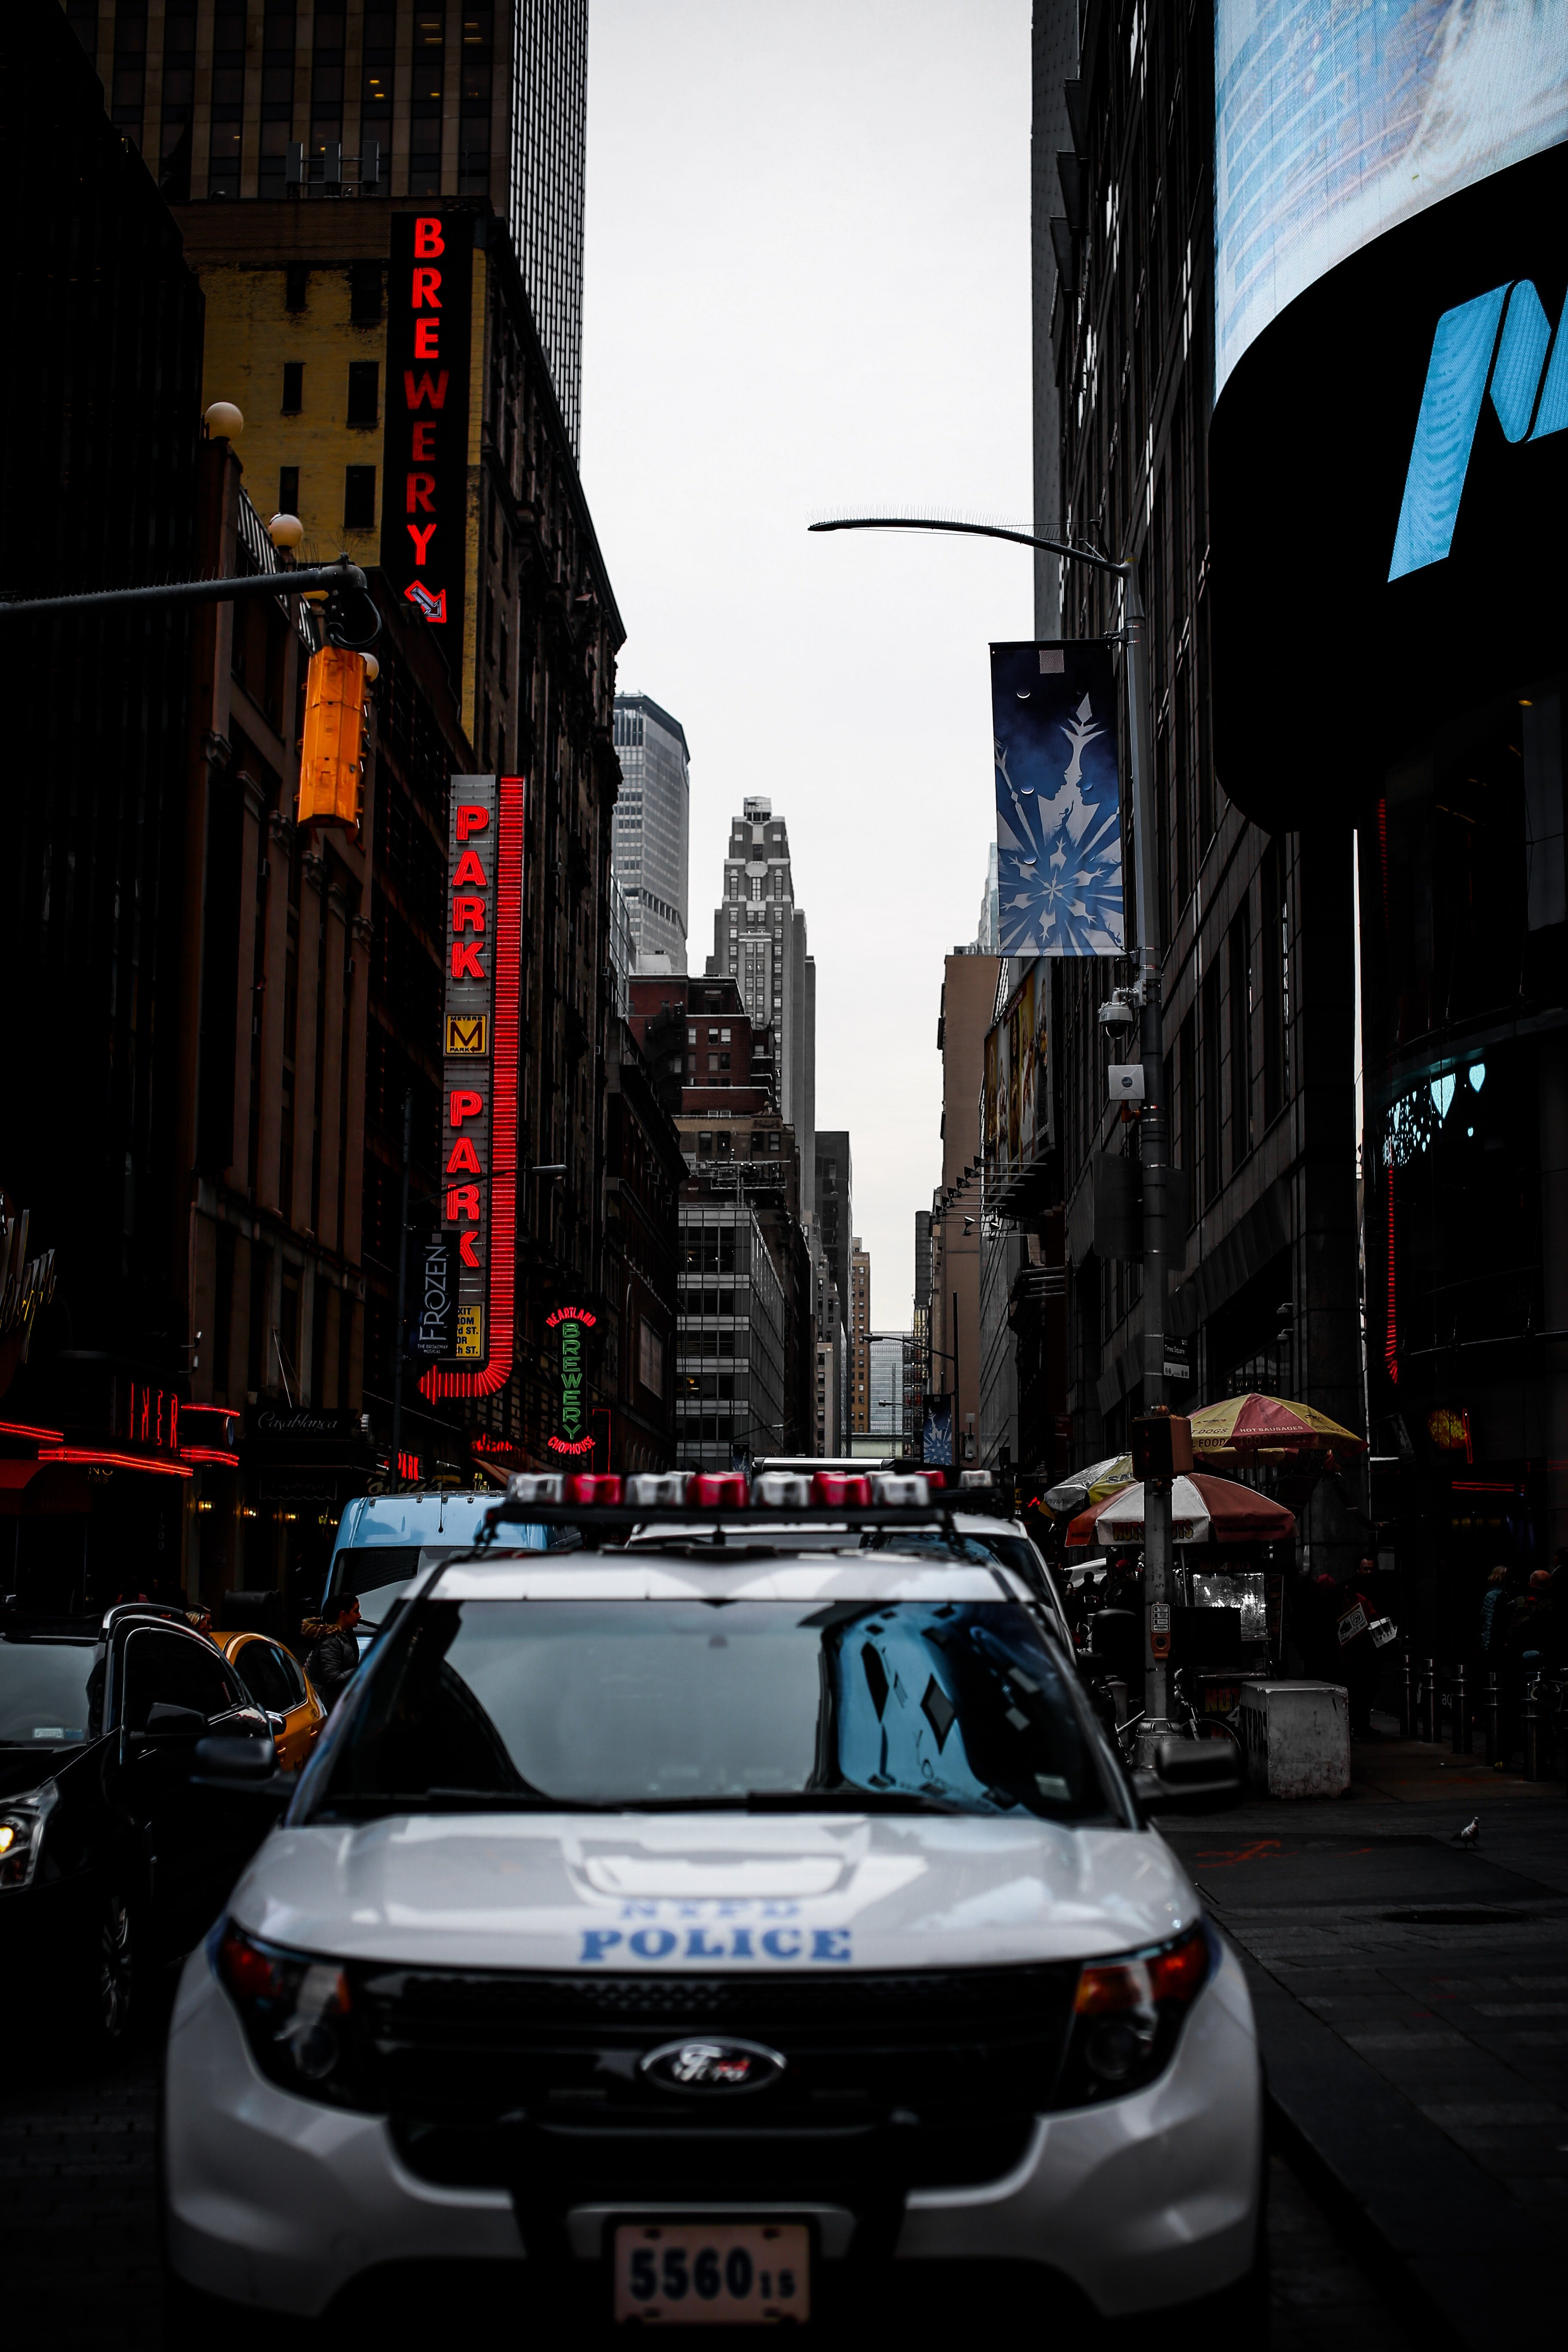 Pictured - A police vehicle in the city   Source: Pexels